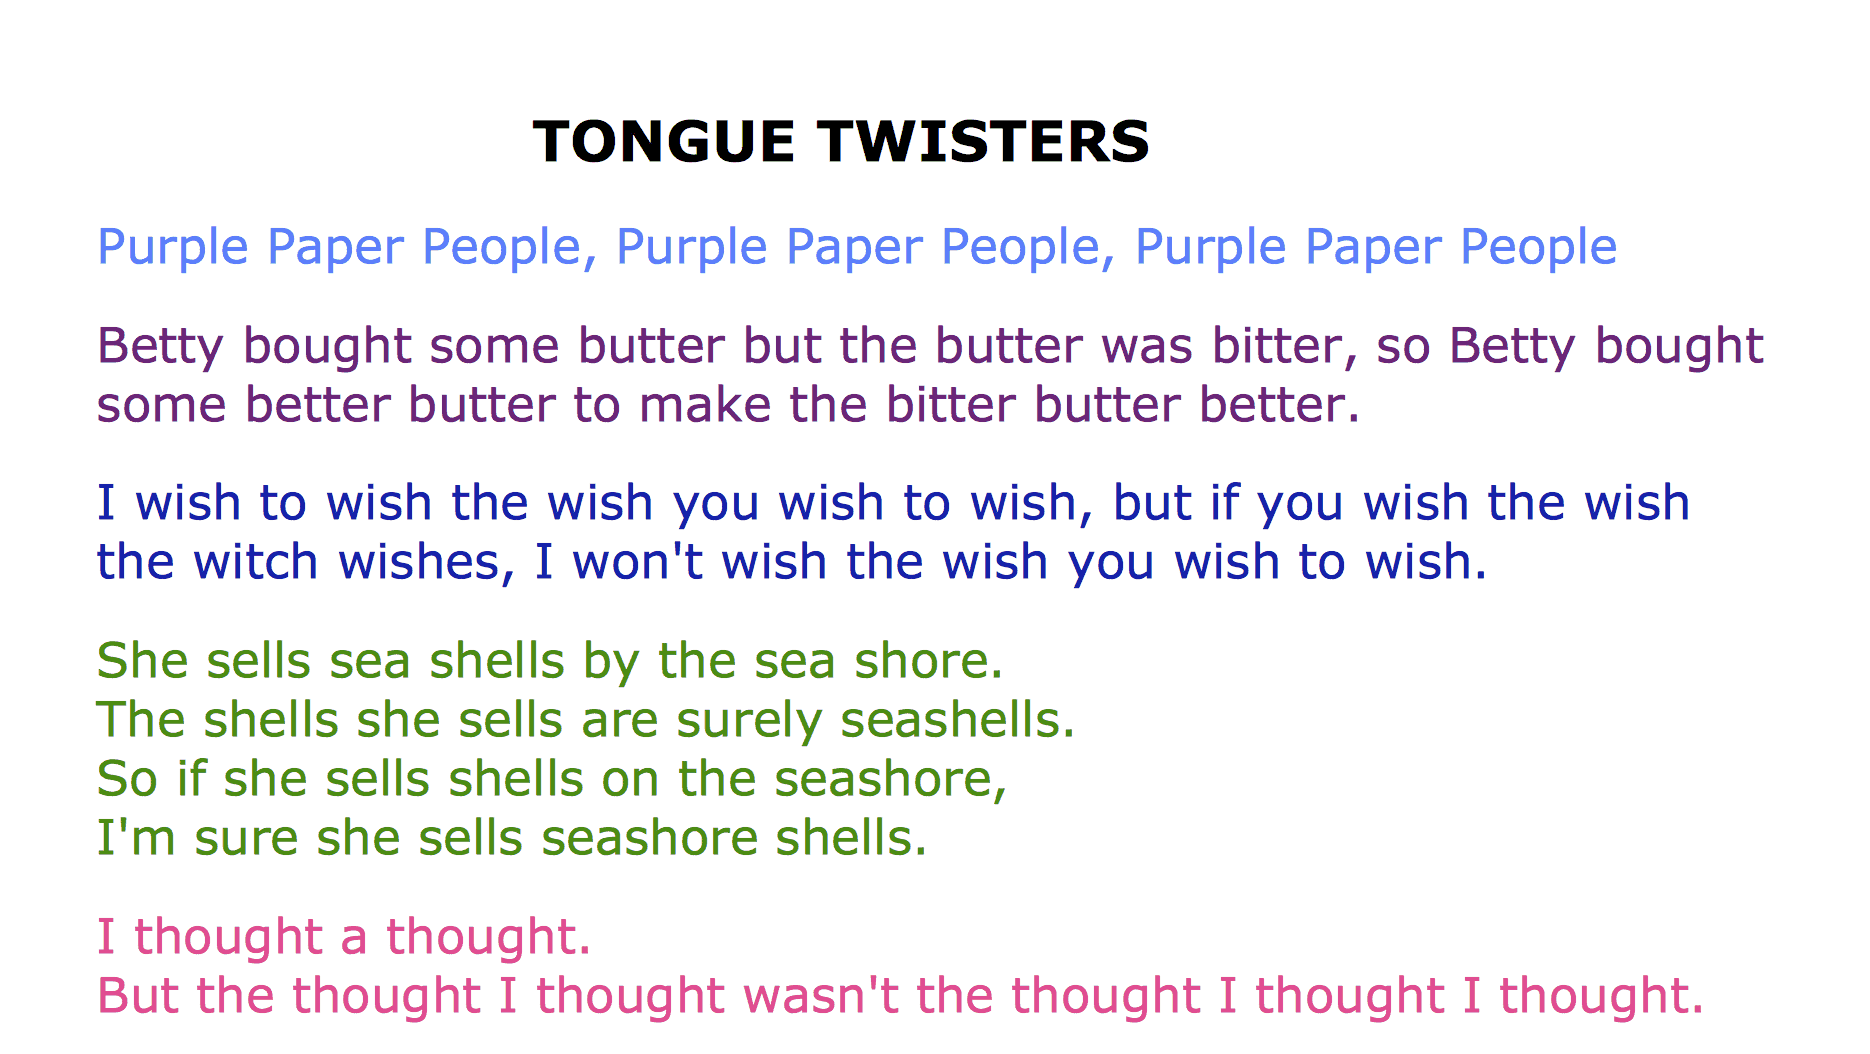 37 Funny Tongue Twisters Guaranteed To Twist Your Tongue